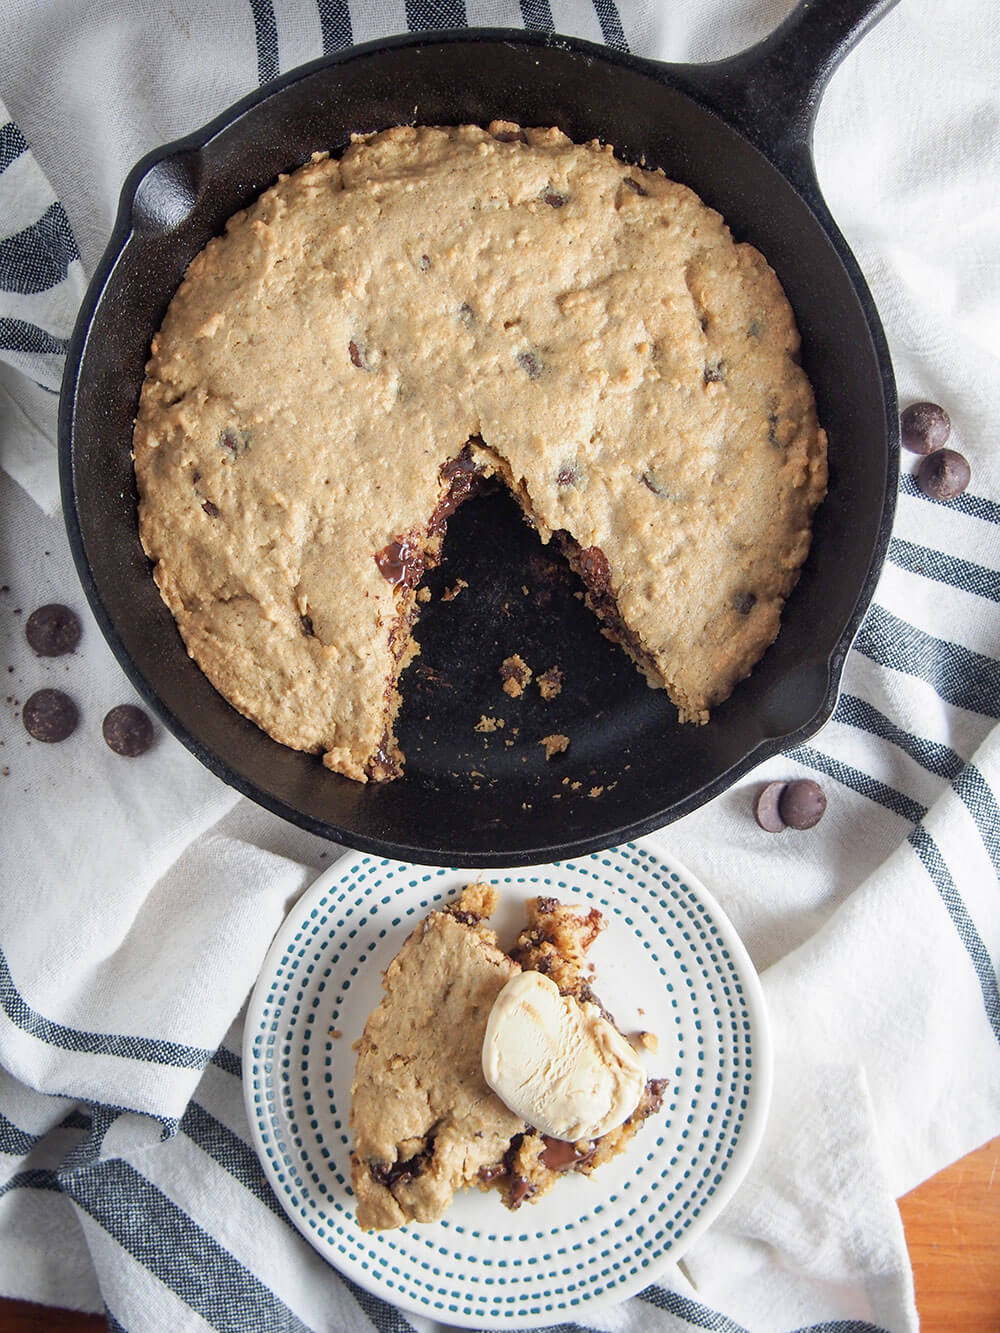 Oatmeal chocolate chip skillet cookie